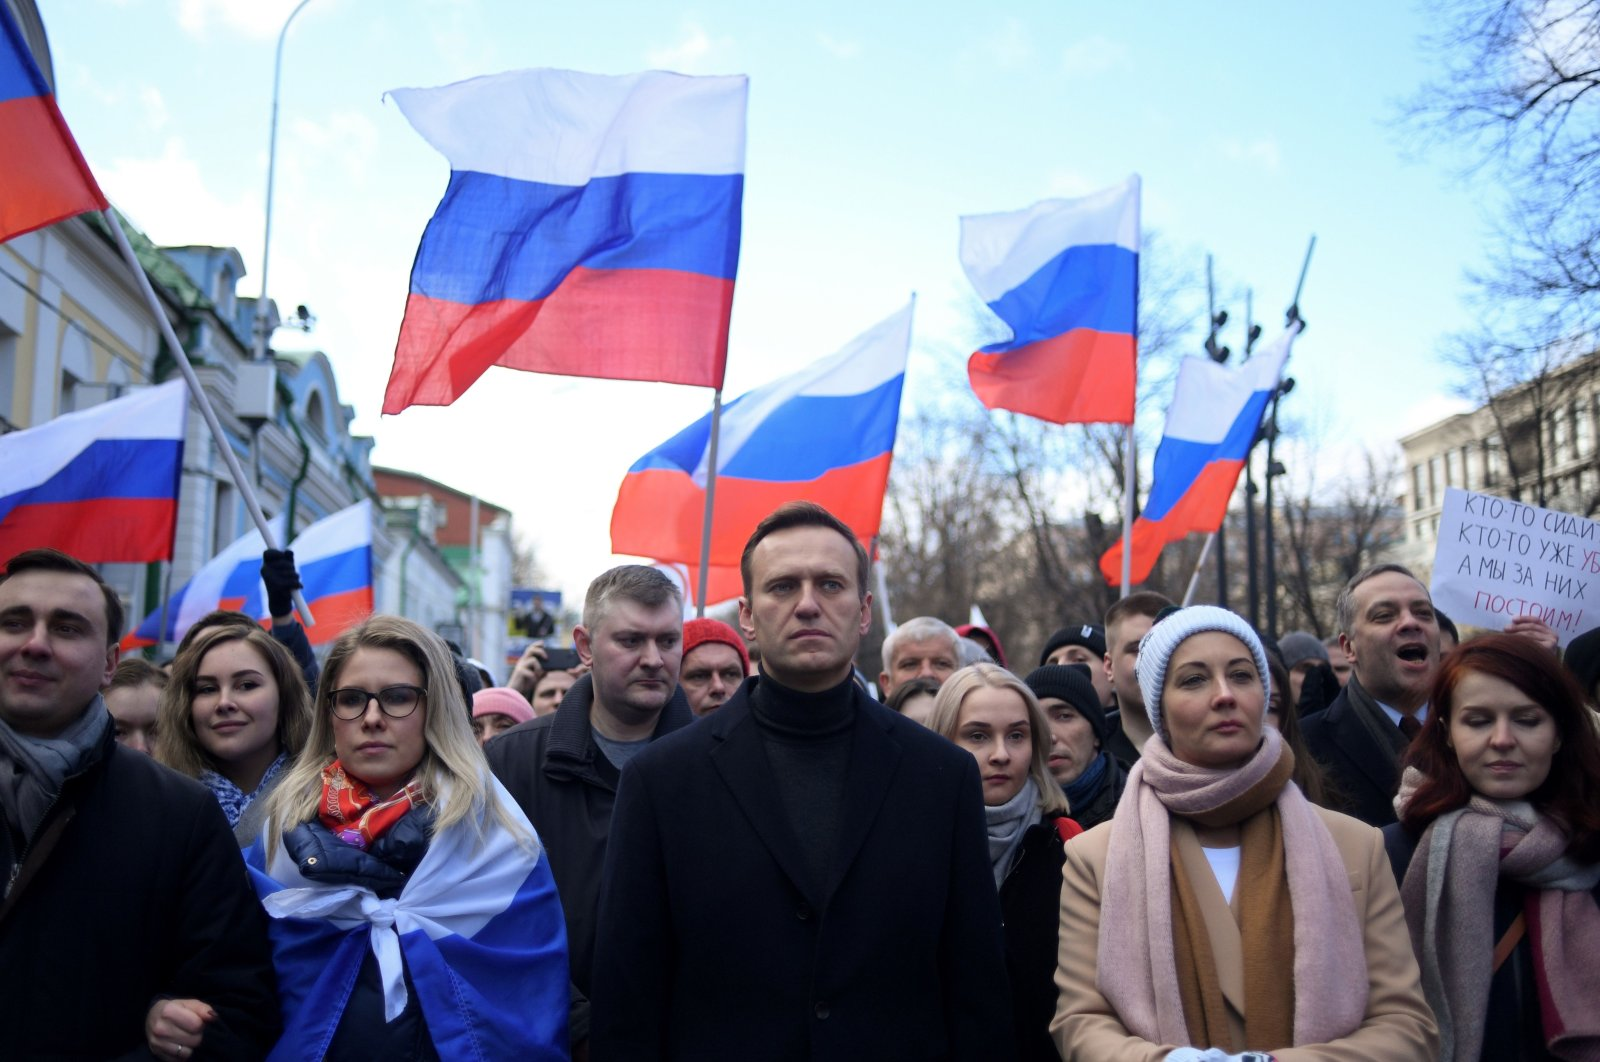 In this file photo, Russian opposition leader Alexei Navalny, his wife Yulia, opposition politician Lyubov Sobol and other demonstrators march in memory of murdered Kremlin critic Boris Nemtsov in downtown Moscow, Feb. 29, 2020. (AFP Photo)